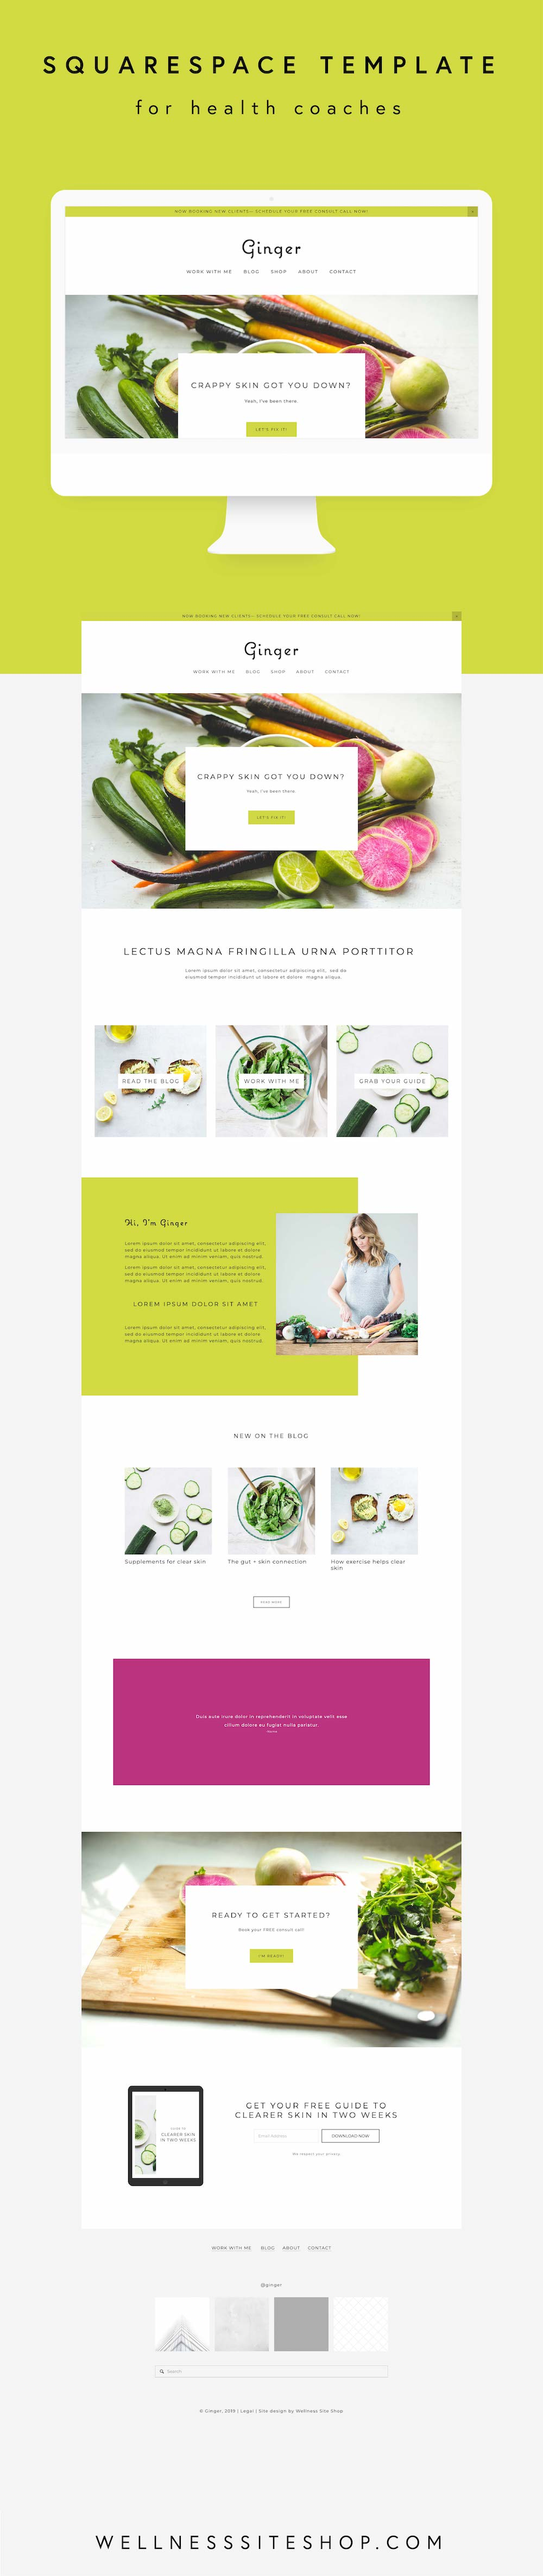 Squarespace template for health coaches